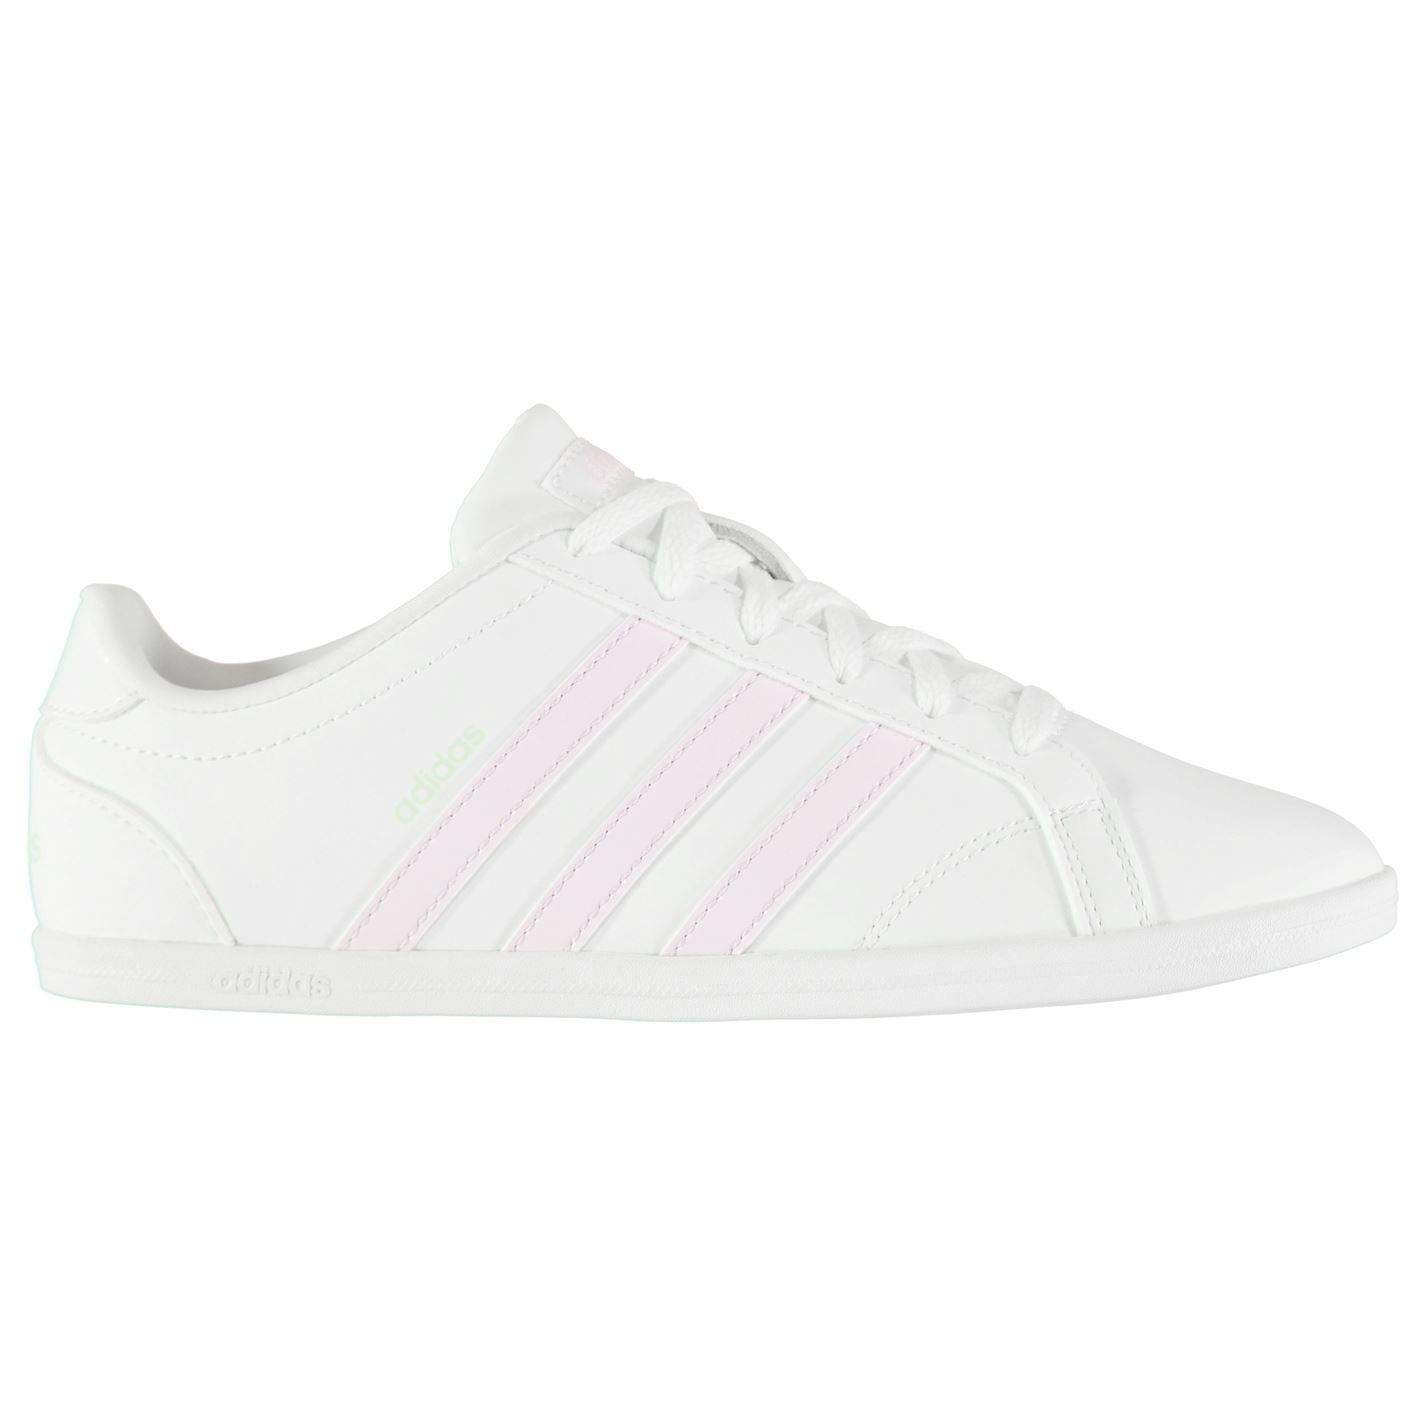 Details about adidas Coneo QT Trainers Womens White/Pink Sports trainers  Sneakers